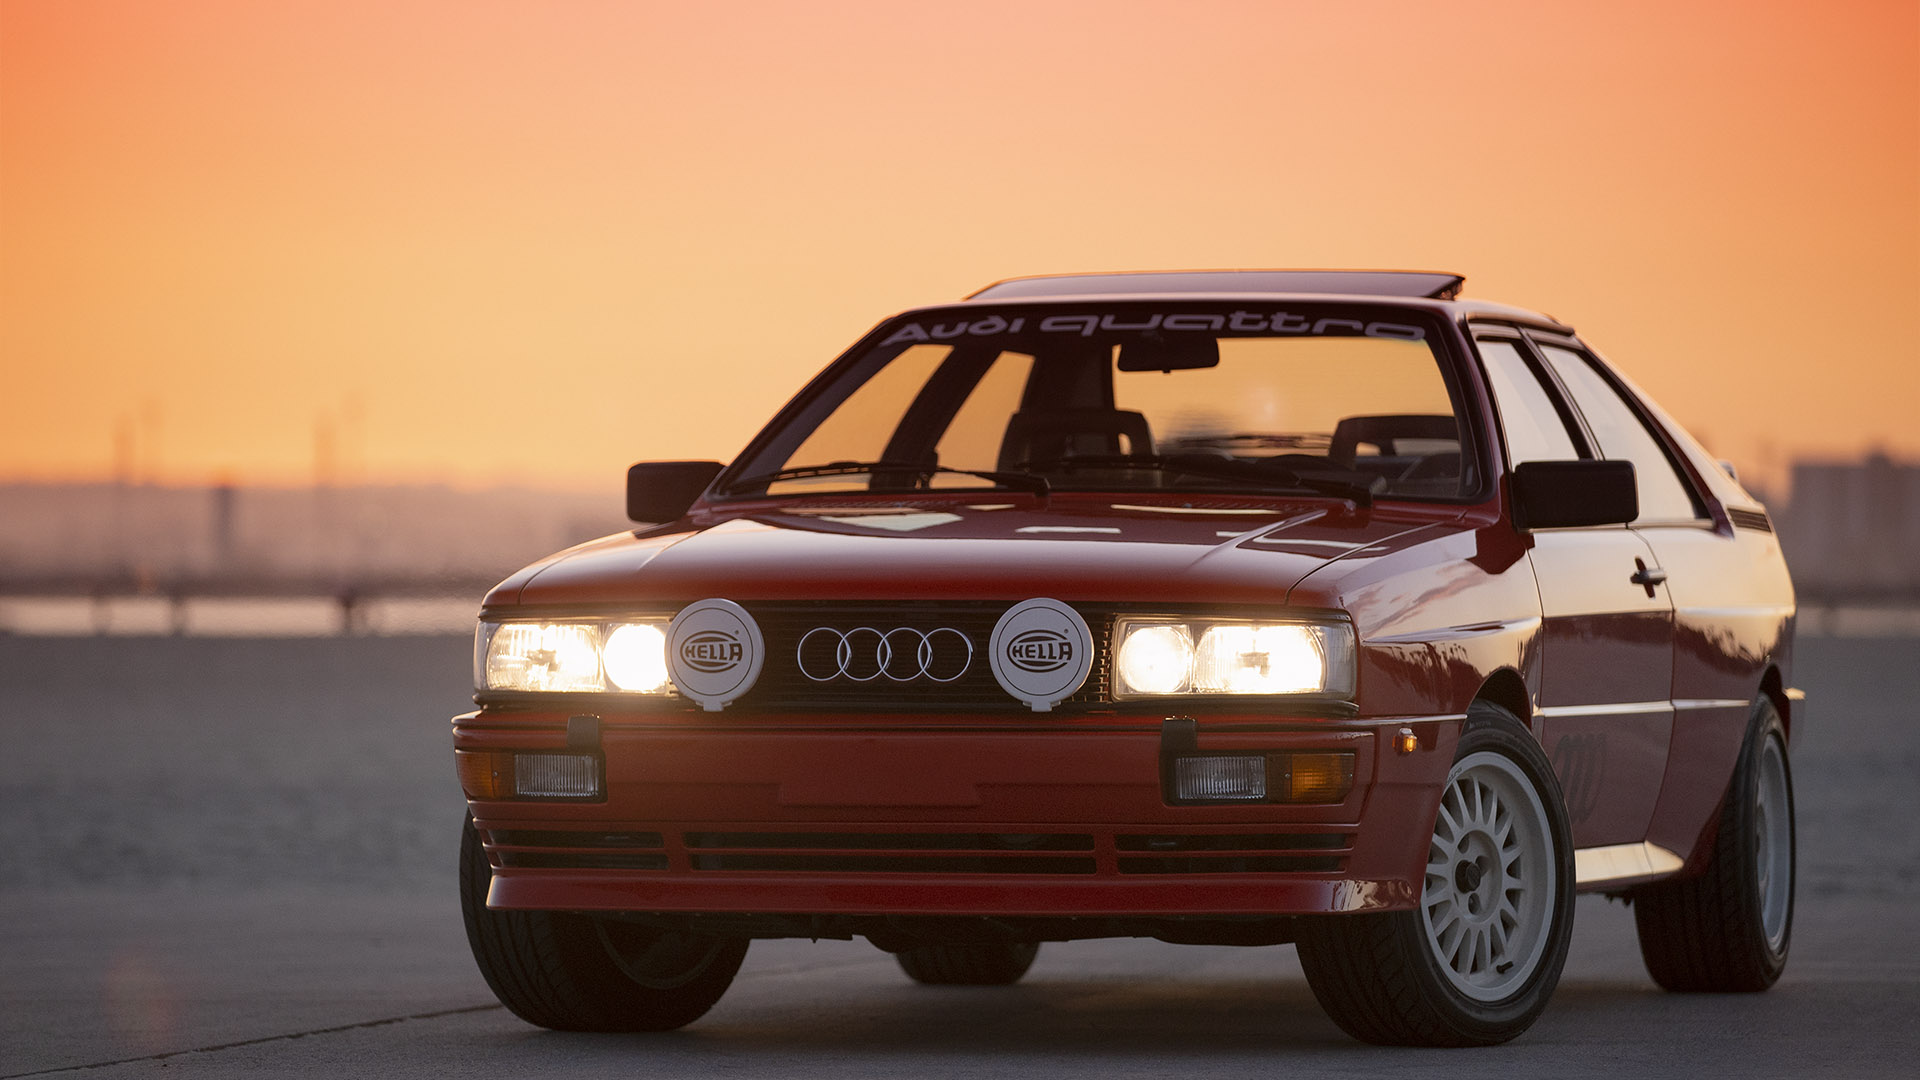 The Beauty Of All-Wheel Drive - The Audi Ur-Quattro